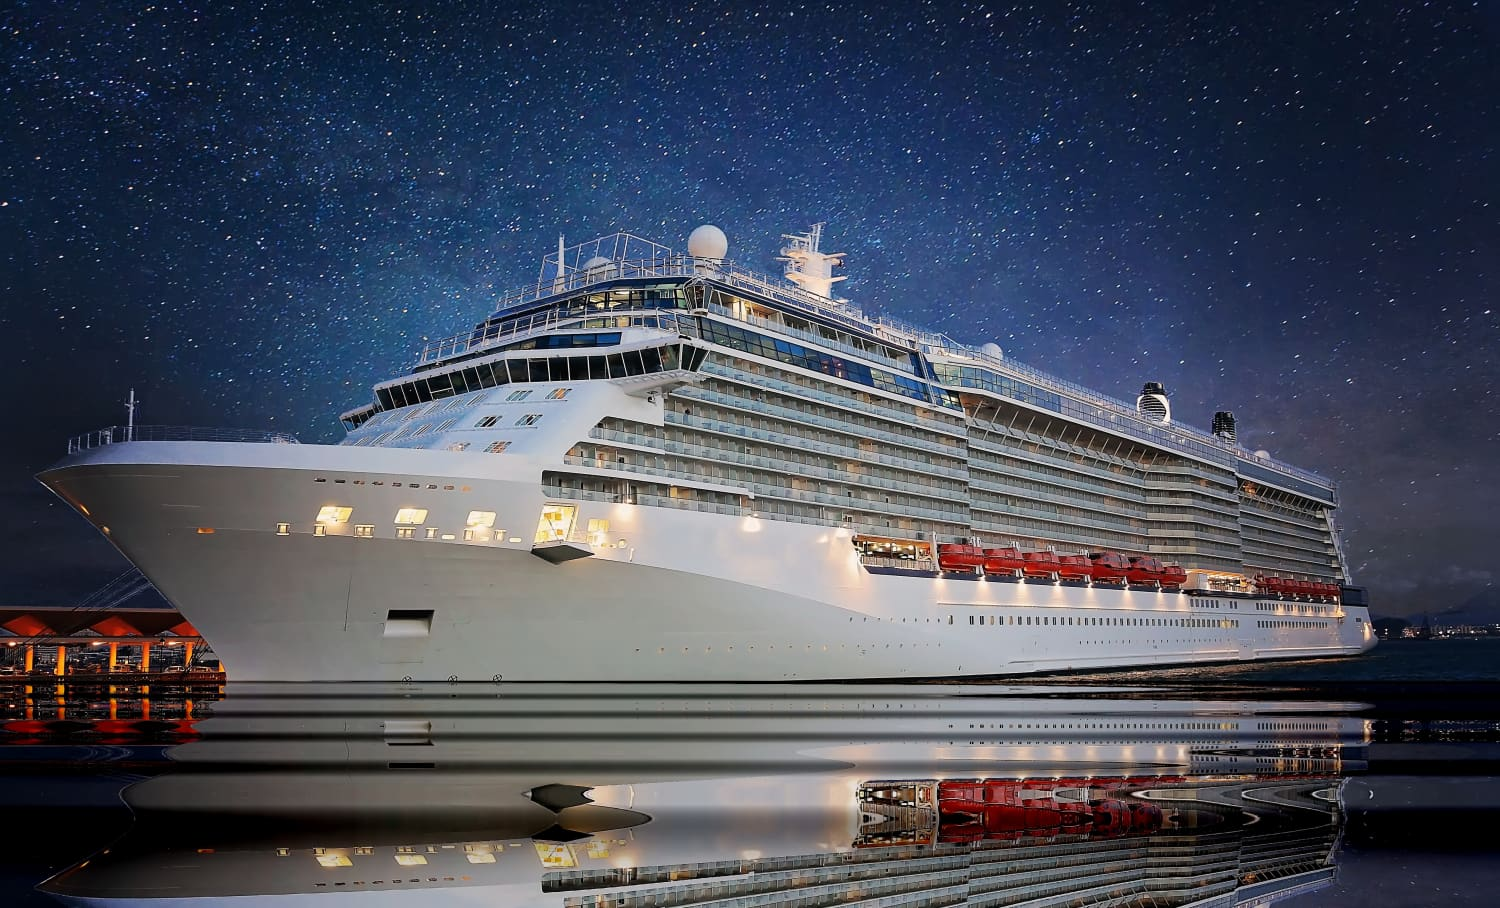 You Can Officially Book Your Ticket on the Adults-Only Virgin Voyages Cruise